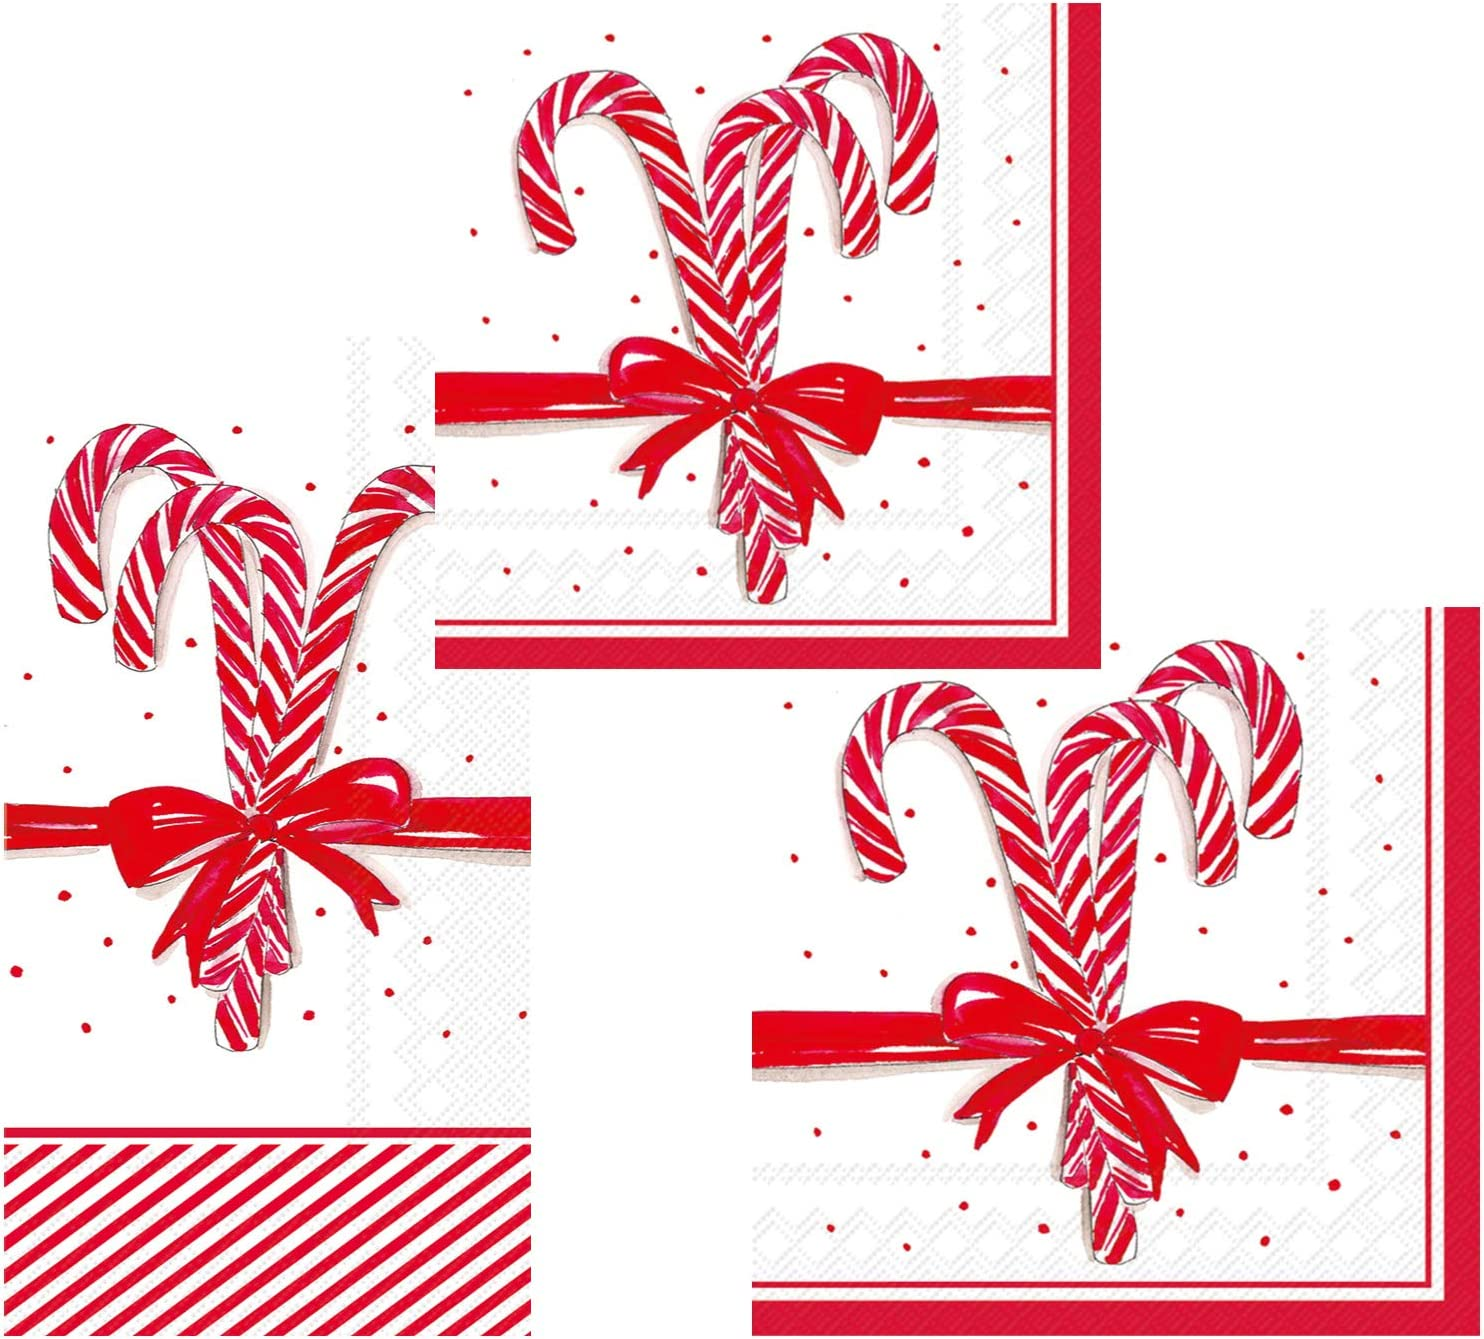 Christmas Holiday Candy Cane Themed Napkin Set - Bundle Includes Guest Napkins/Towels, Lunch Napkins, and Beverage Napkins